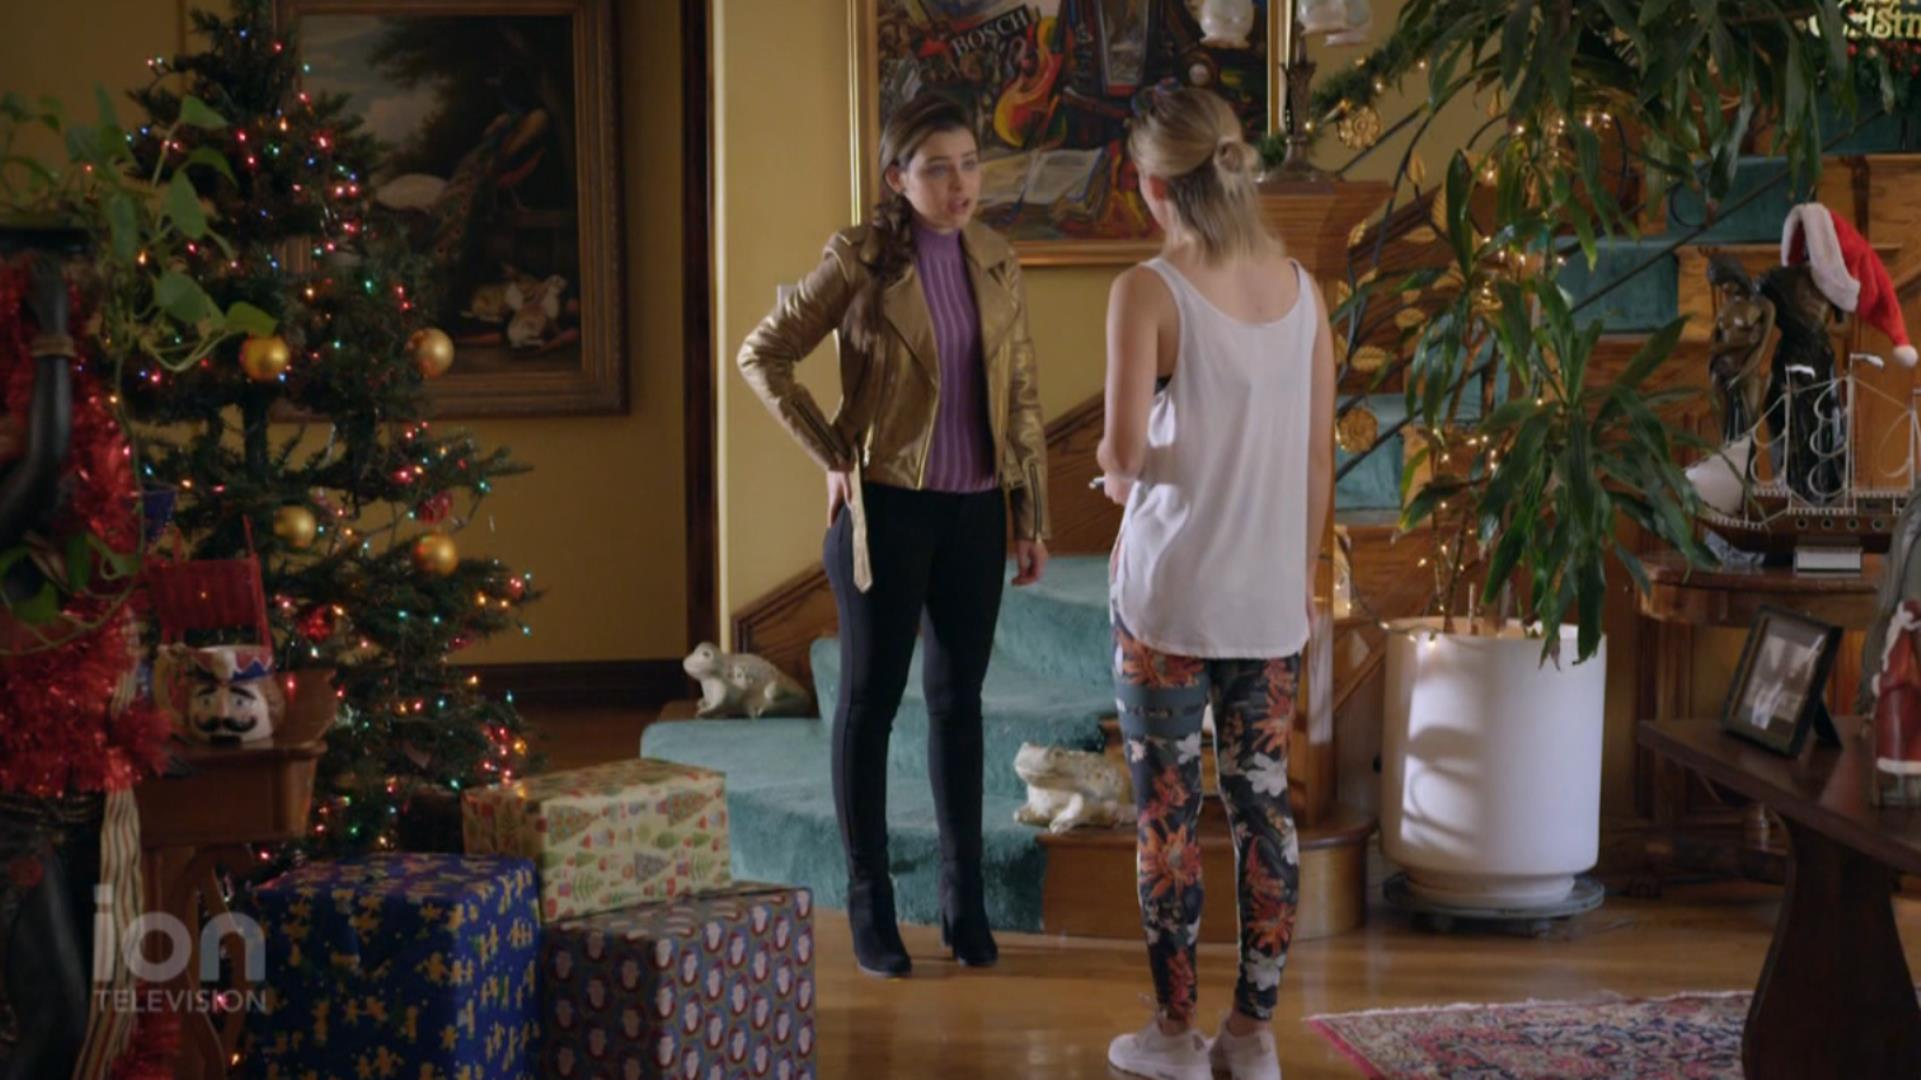 Anna Marie Dobbins and Nicolette Langley in Christmas Matchmakers (2019)